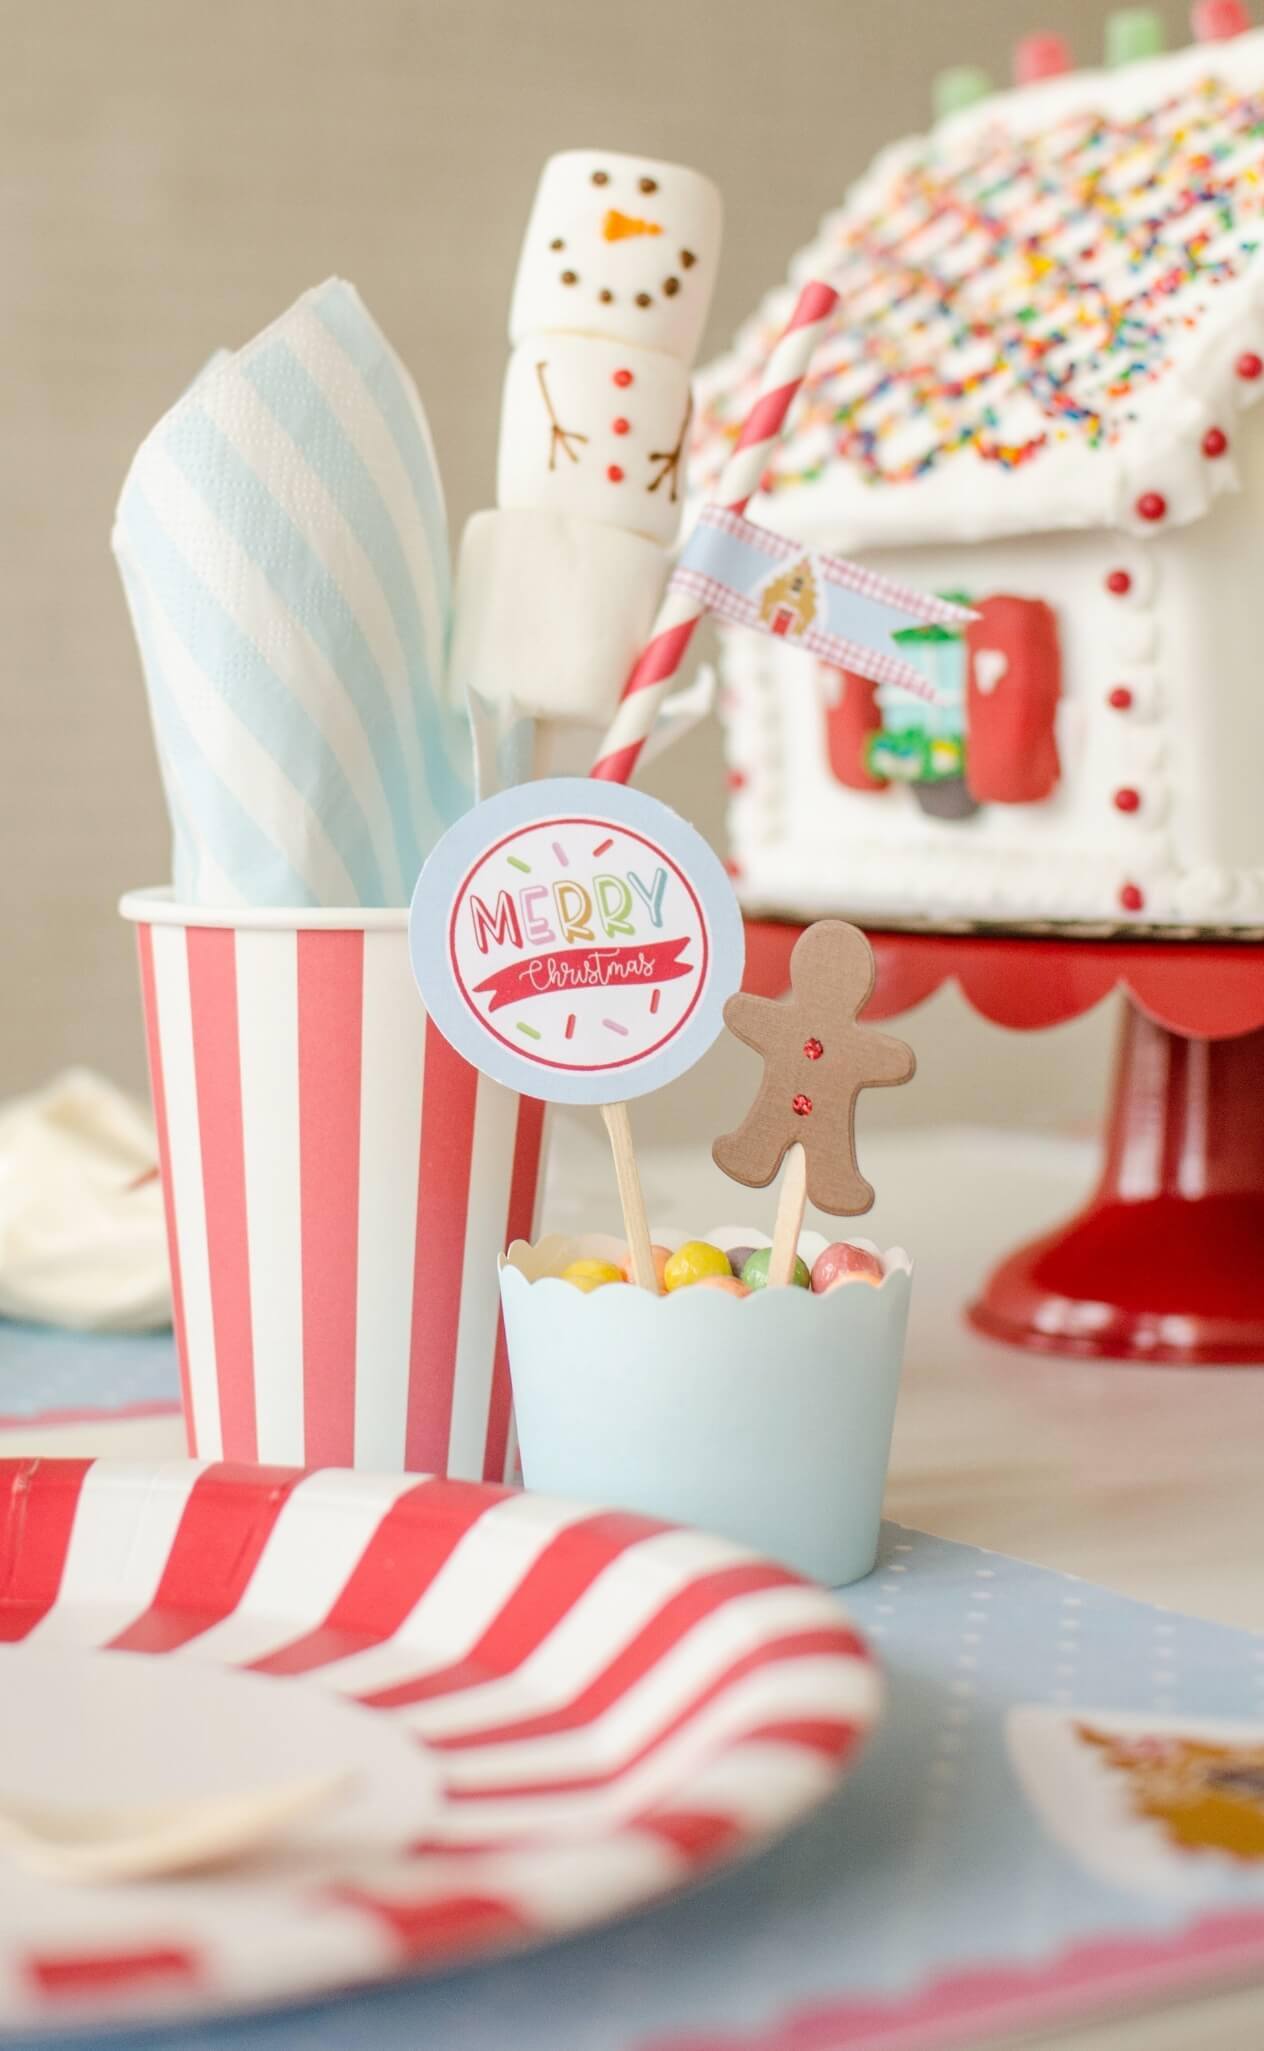 Merry Christmas and Gingerbread boy cupcake toppers as a party decoration for a holiday party. See more from this Cookies for Santa party on www.minteventdesign.com - styled by Austin, Texas based party planner Mint Event Design. #holidayparty #holidaypartyideas #christmaspartyideas #cupcaketoppers